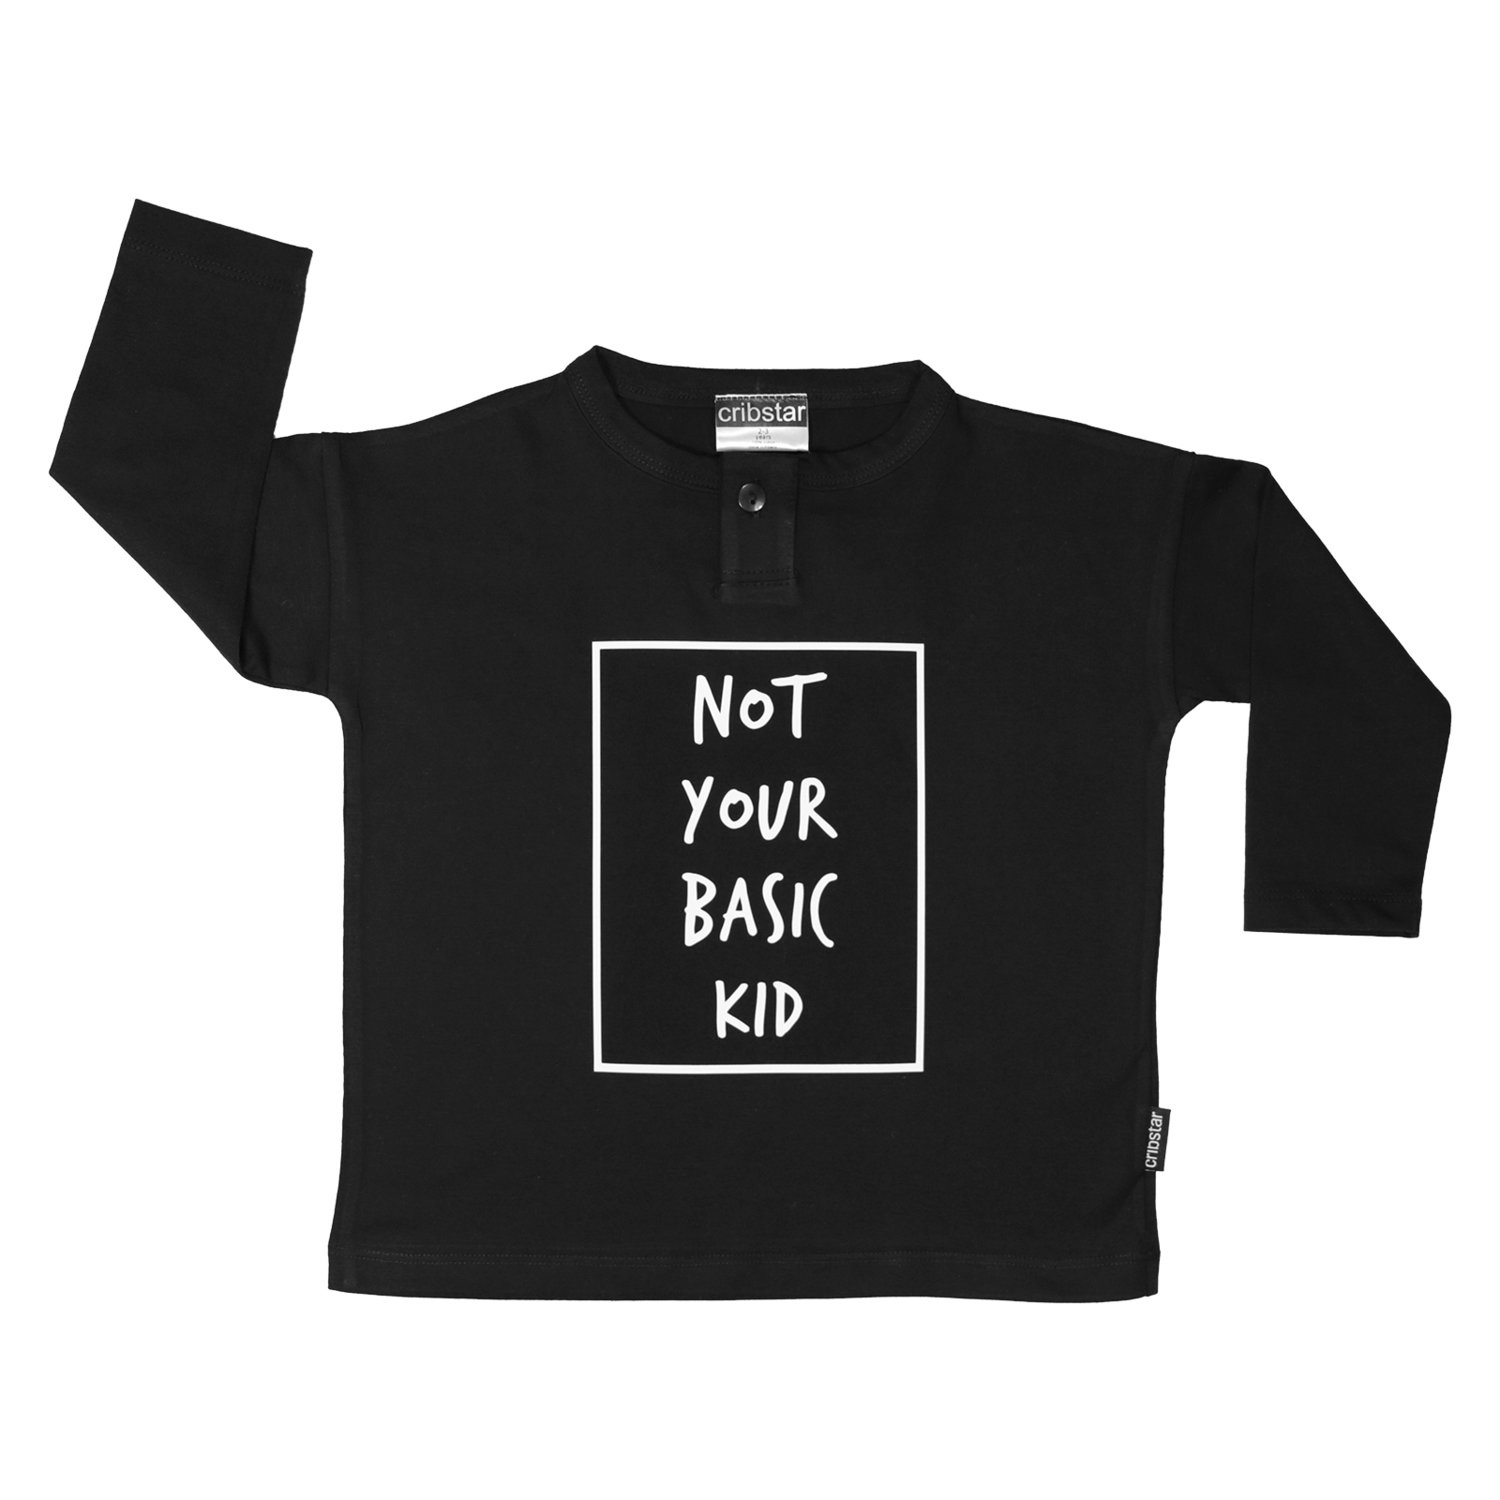 Cribstar 'Not Your Basic Kid' long sleeved top